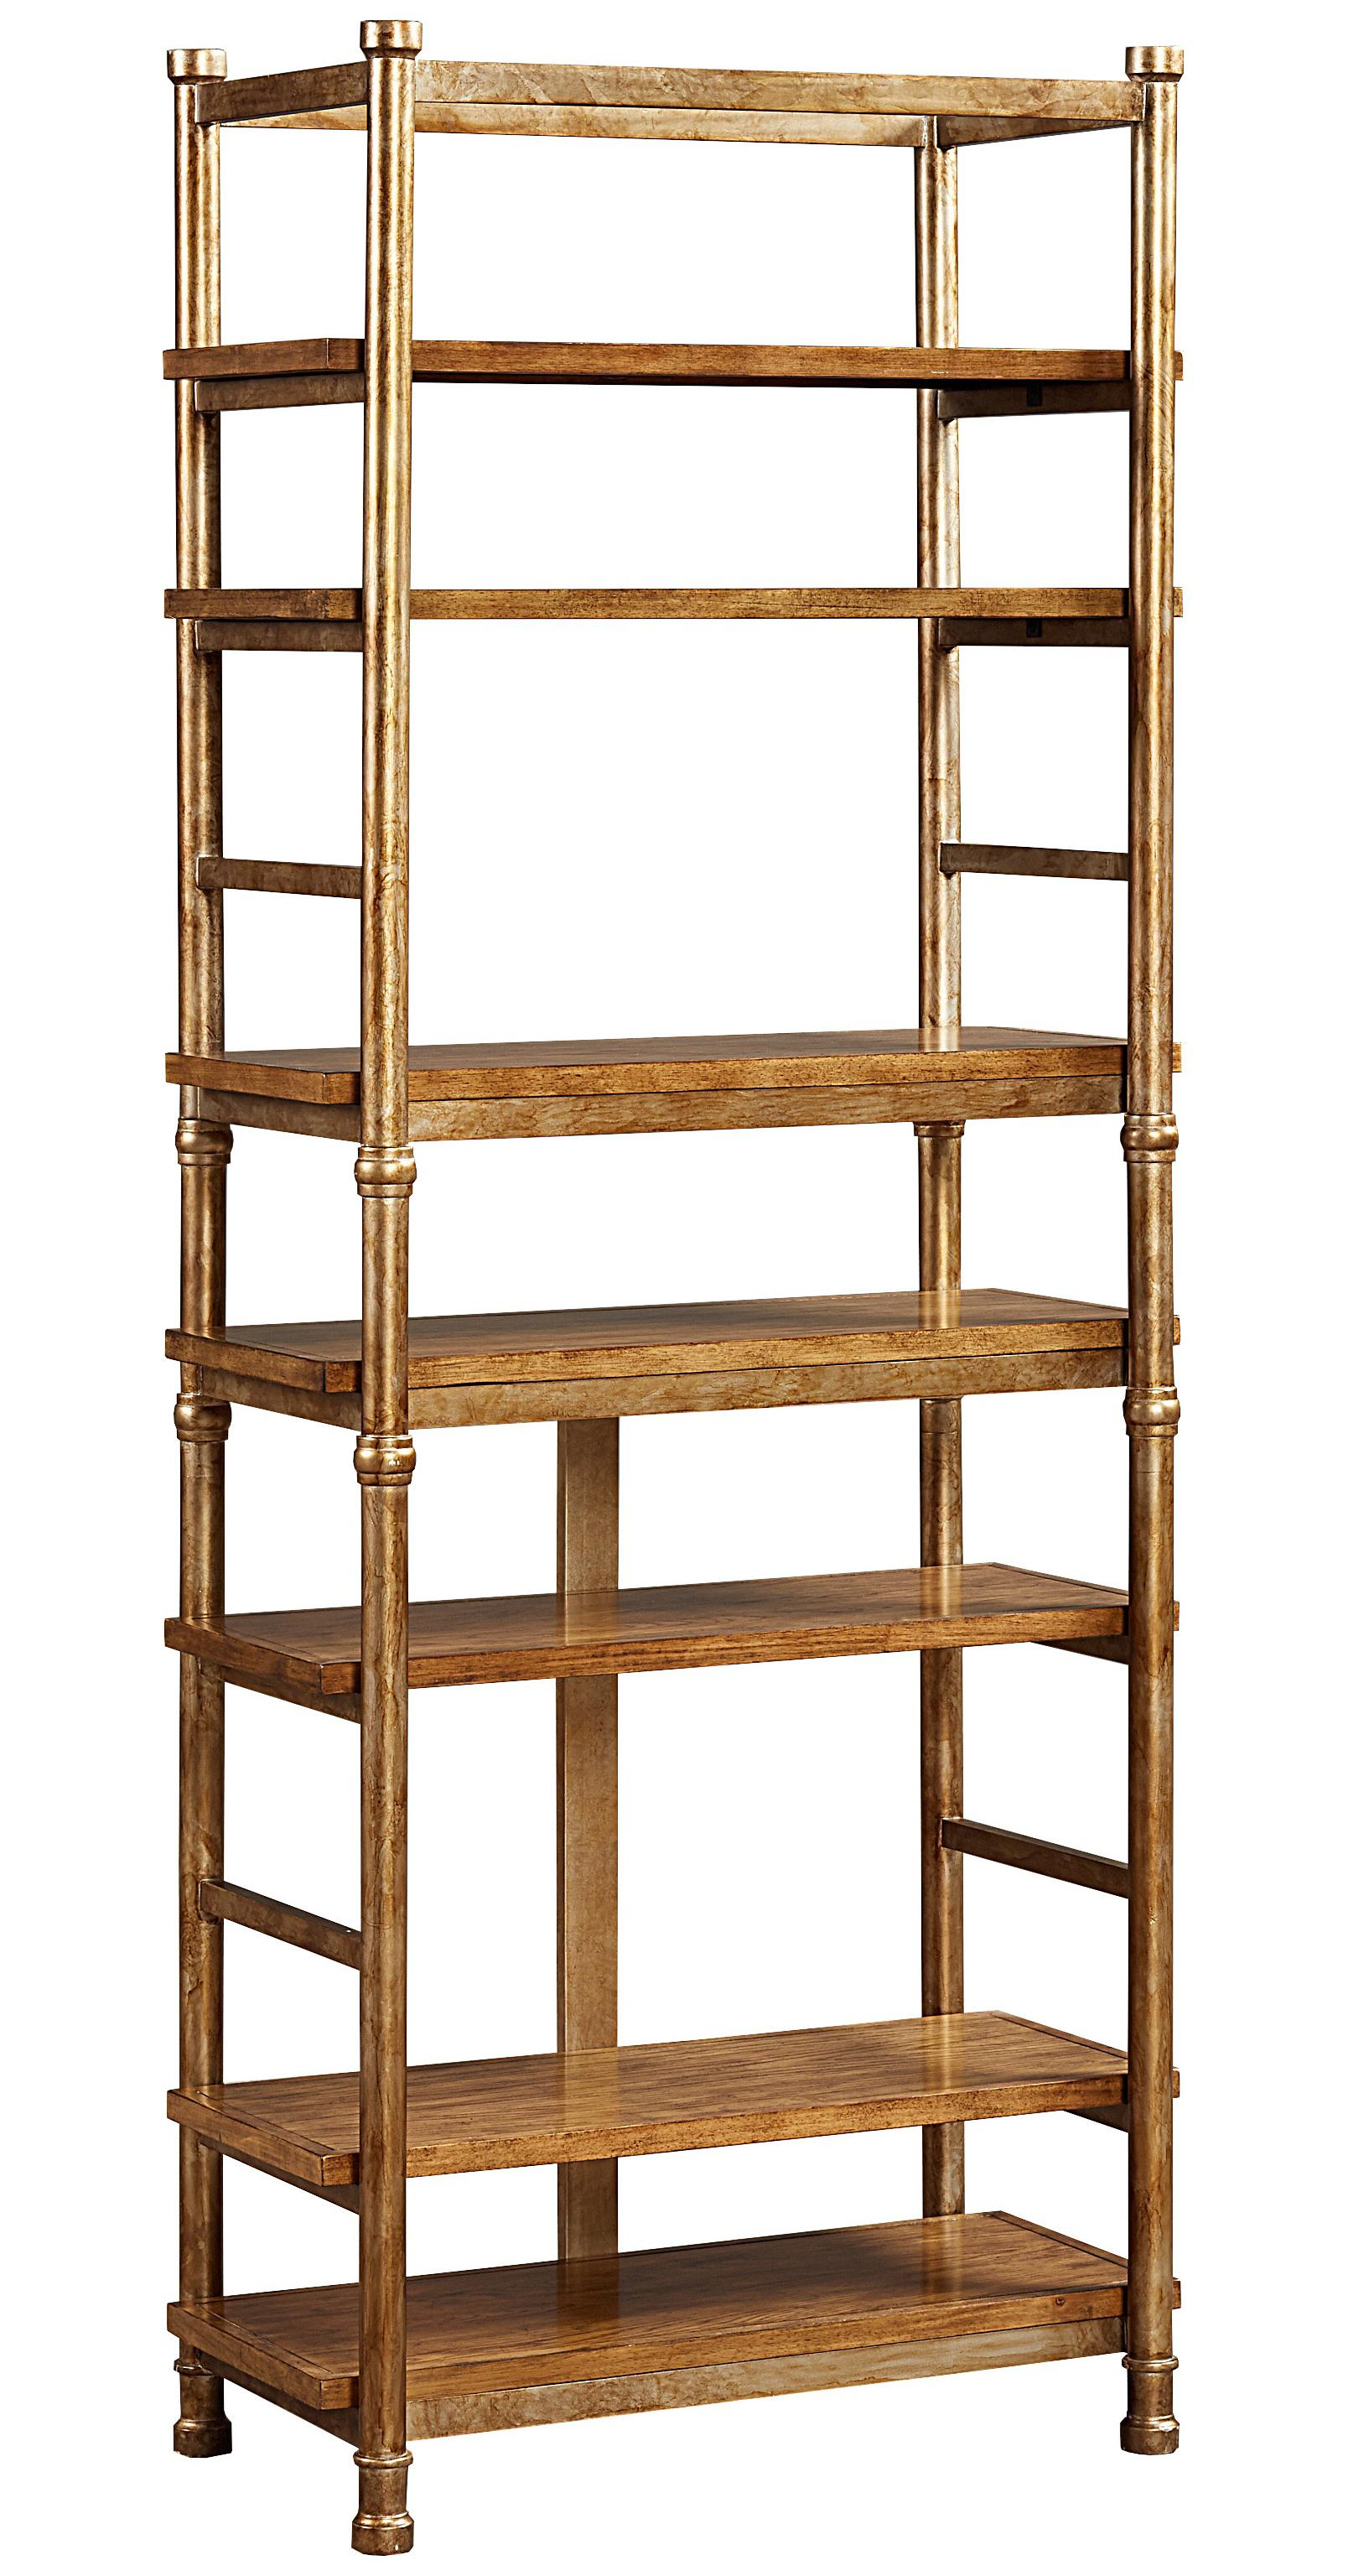 Broyhill Furniture New Vintage Etagere - Item Number: 4808-026